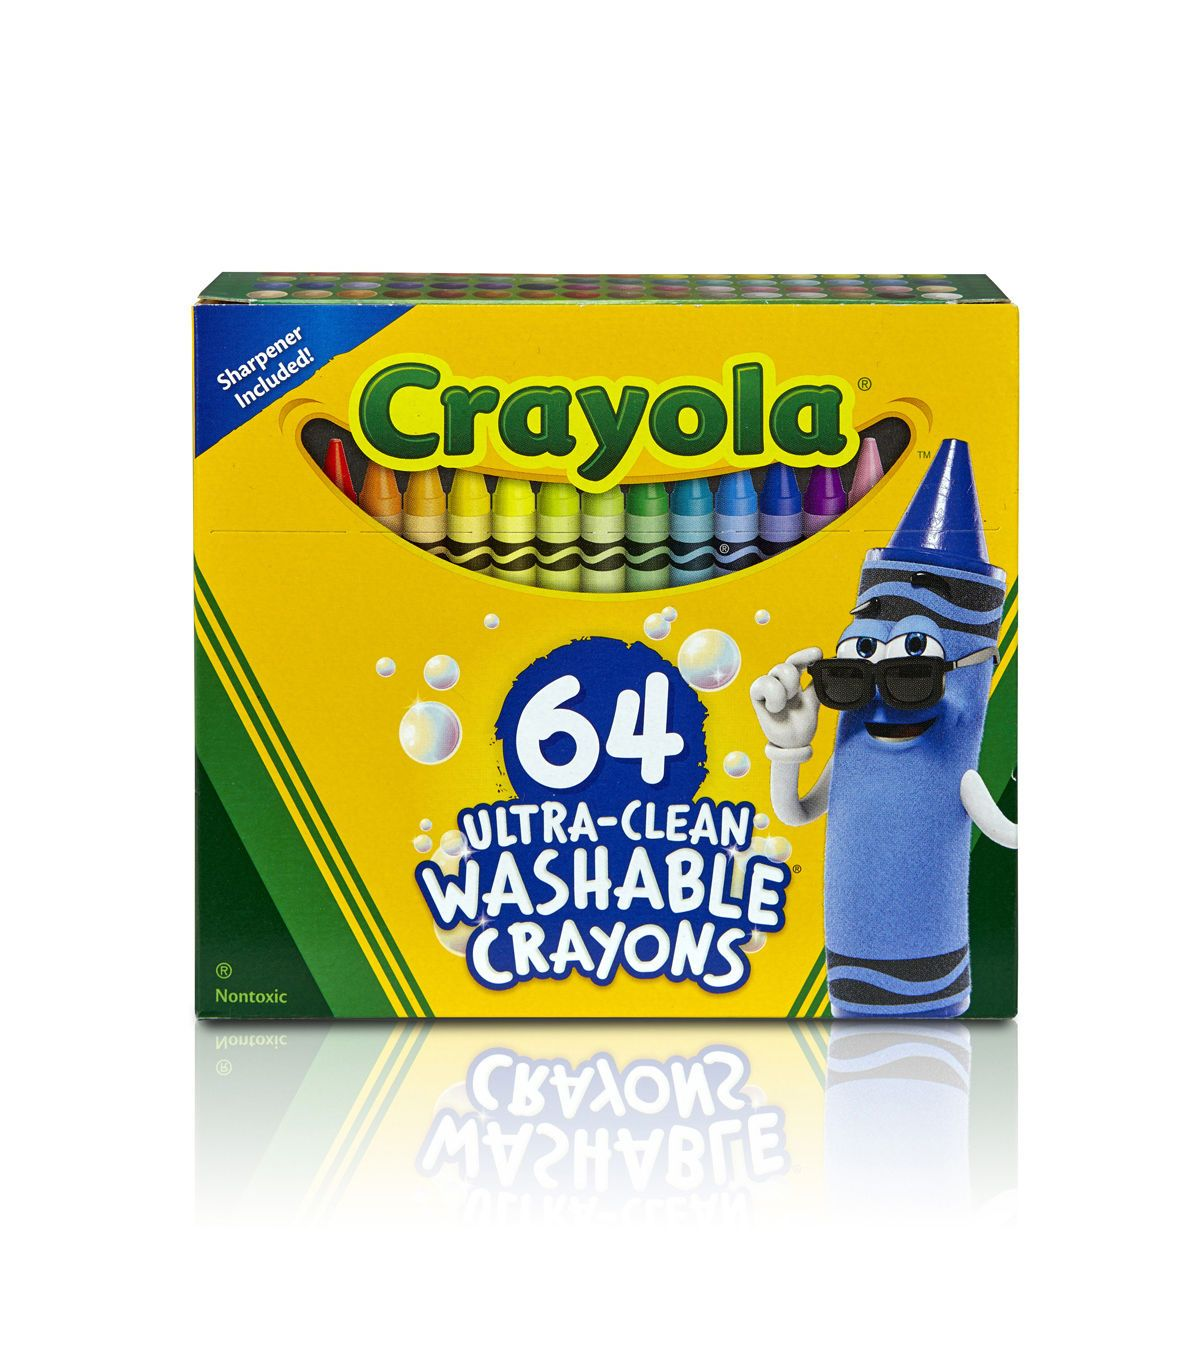 Crayola Ultra Clean Washable Crayons 64/Pkg | Products in ...